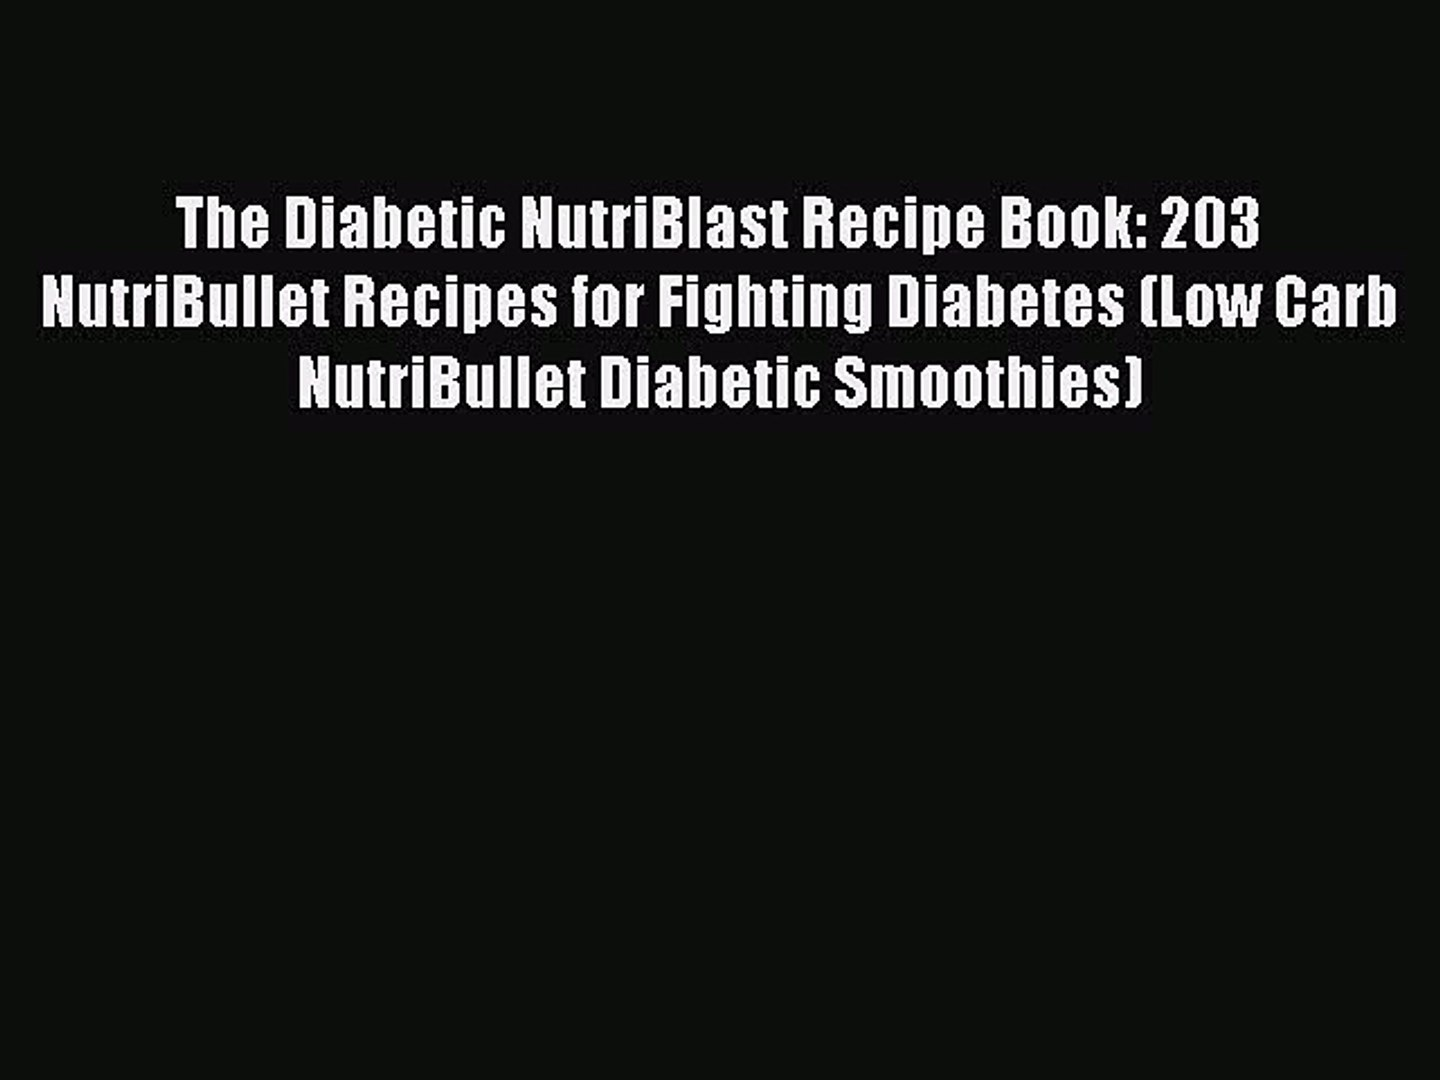 Pdf Download The Diabetic Nutriblast Recipe Book 203 Nutribullet Recipes For Fighting Diabetes